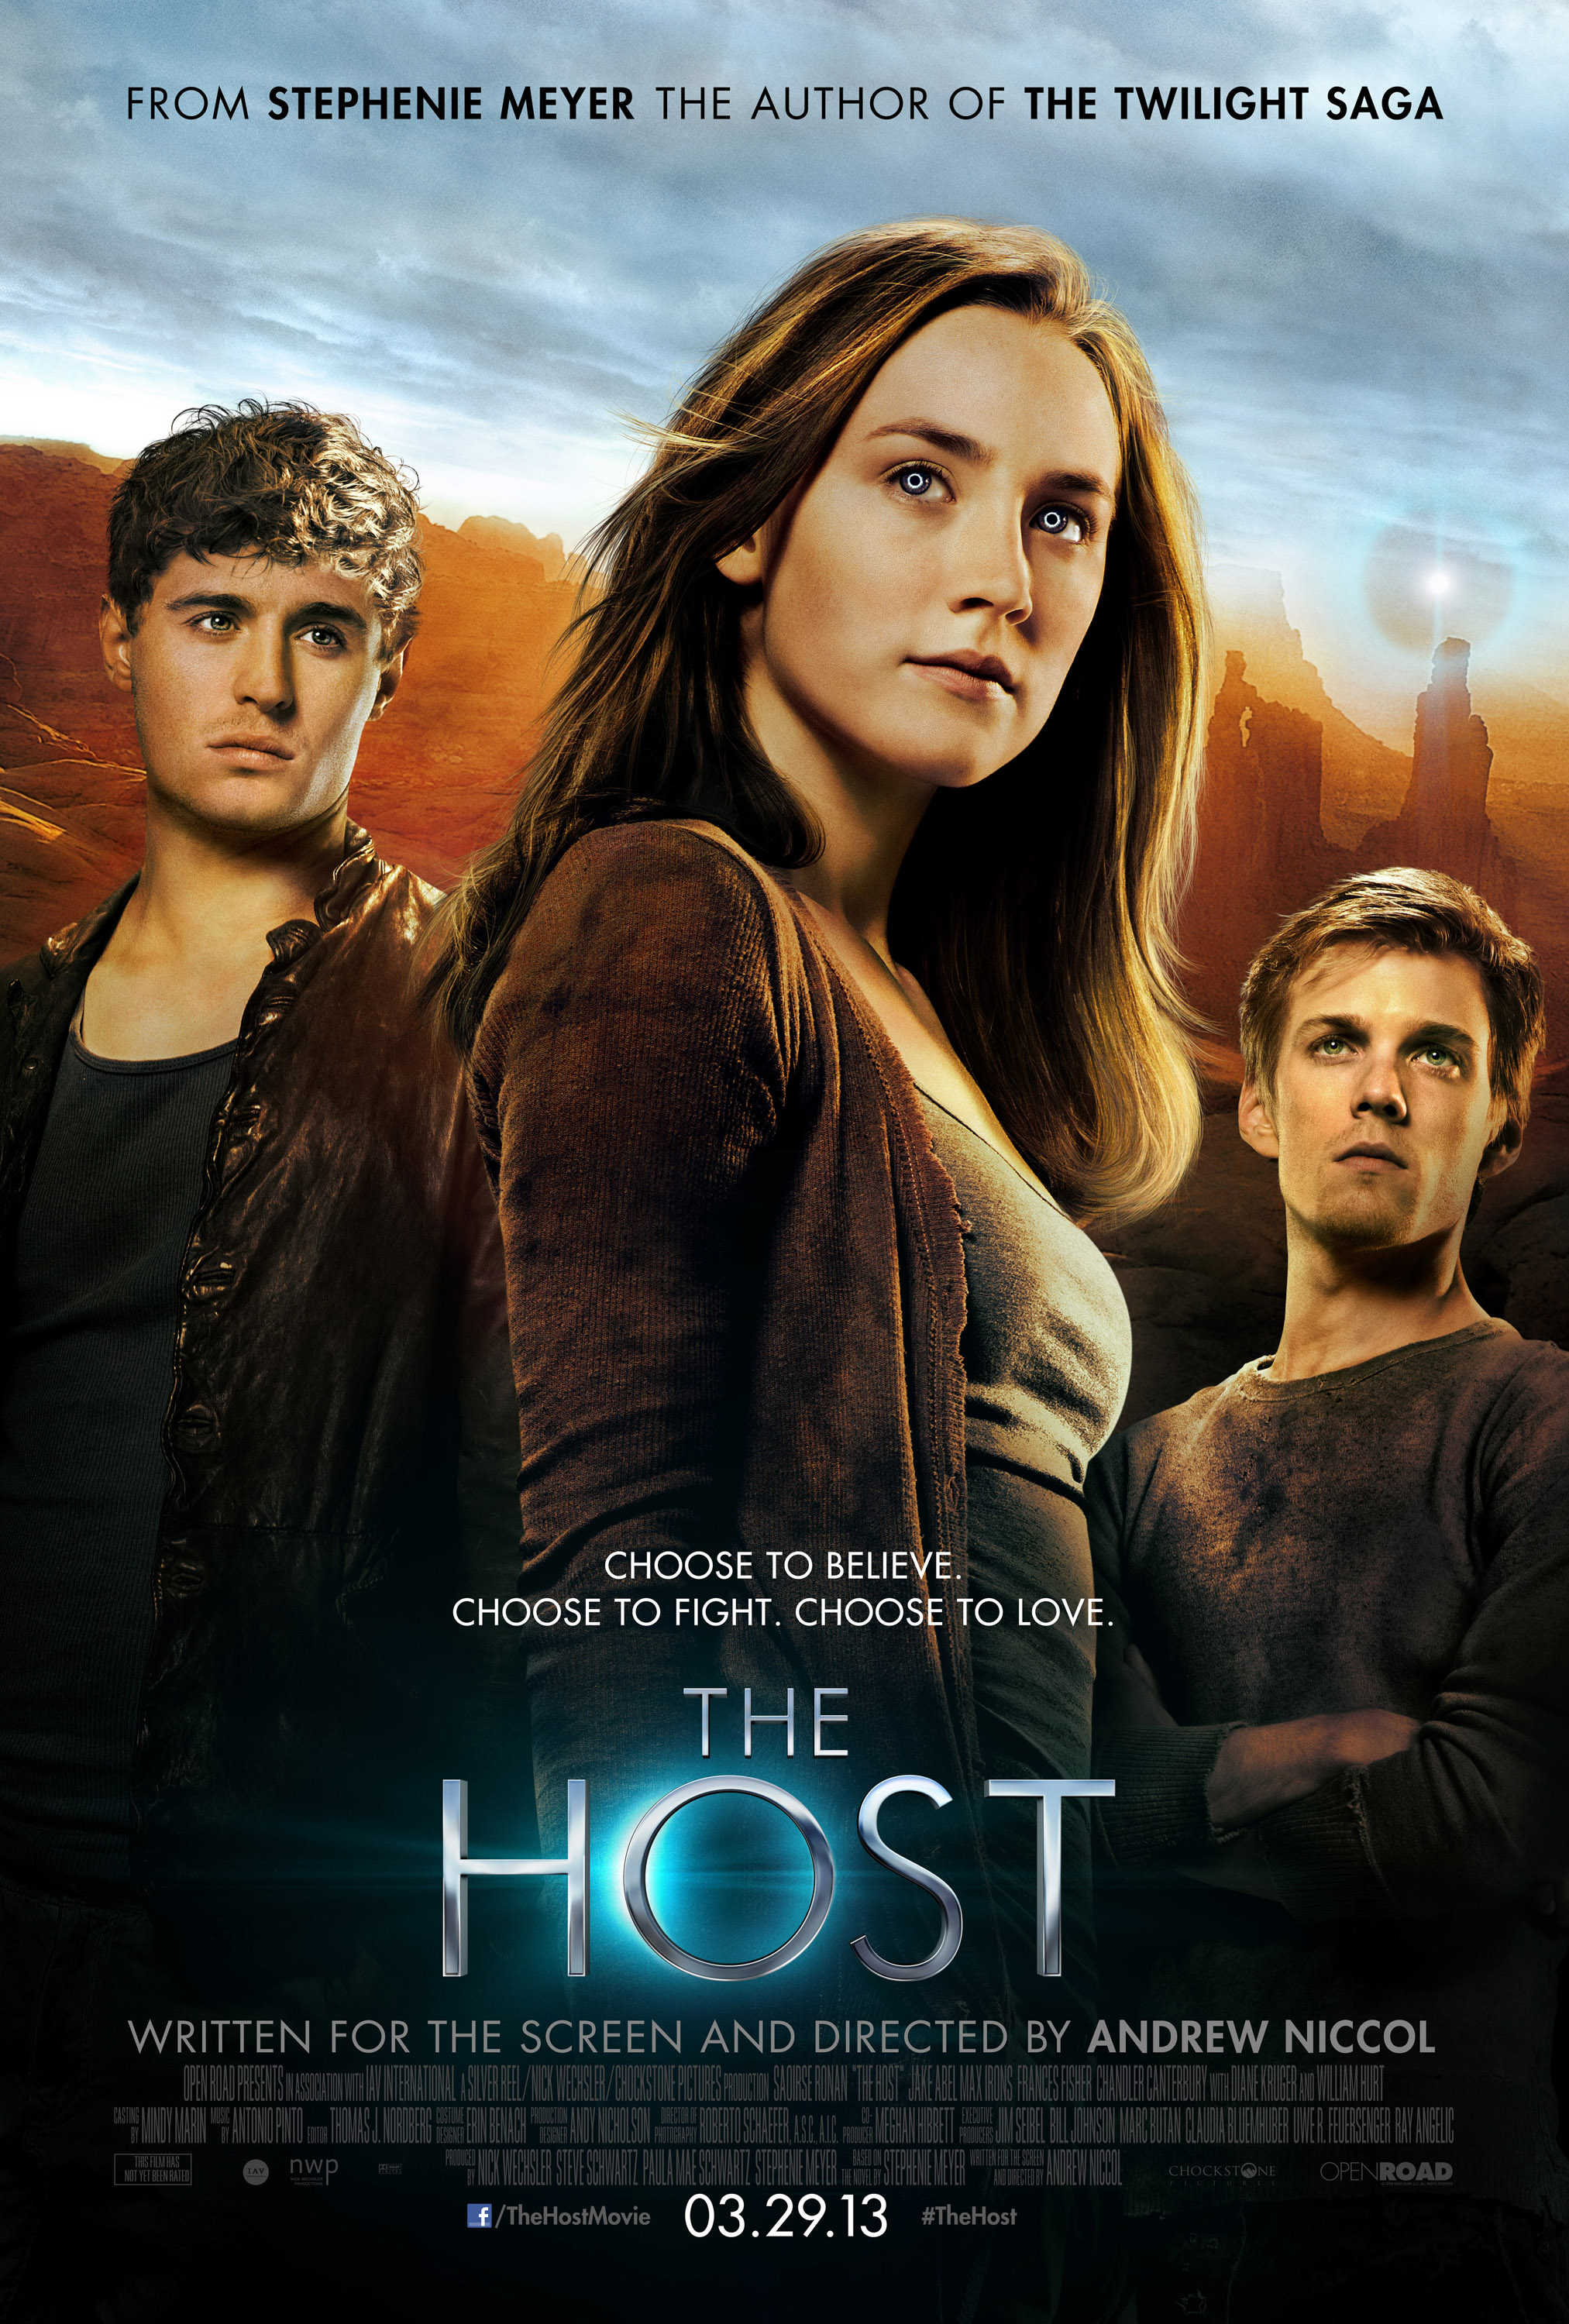 by Stephenie Meyer - THE HOST New Trailer